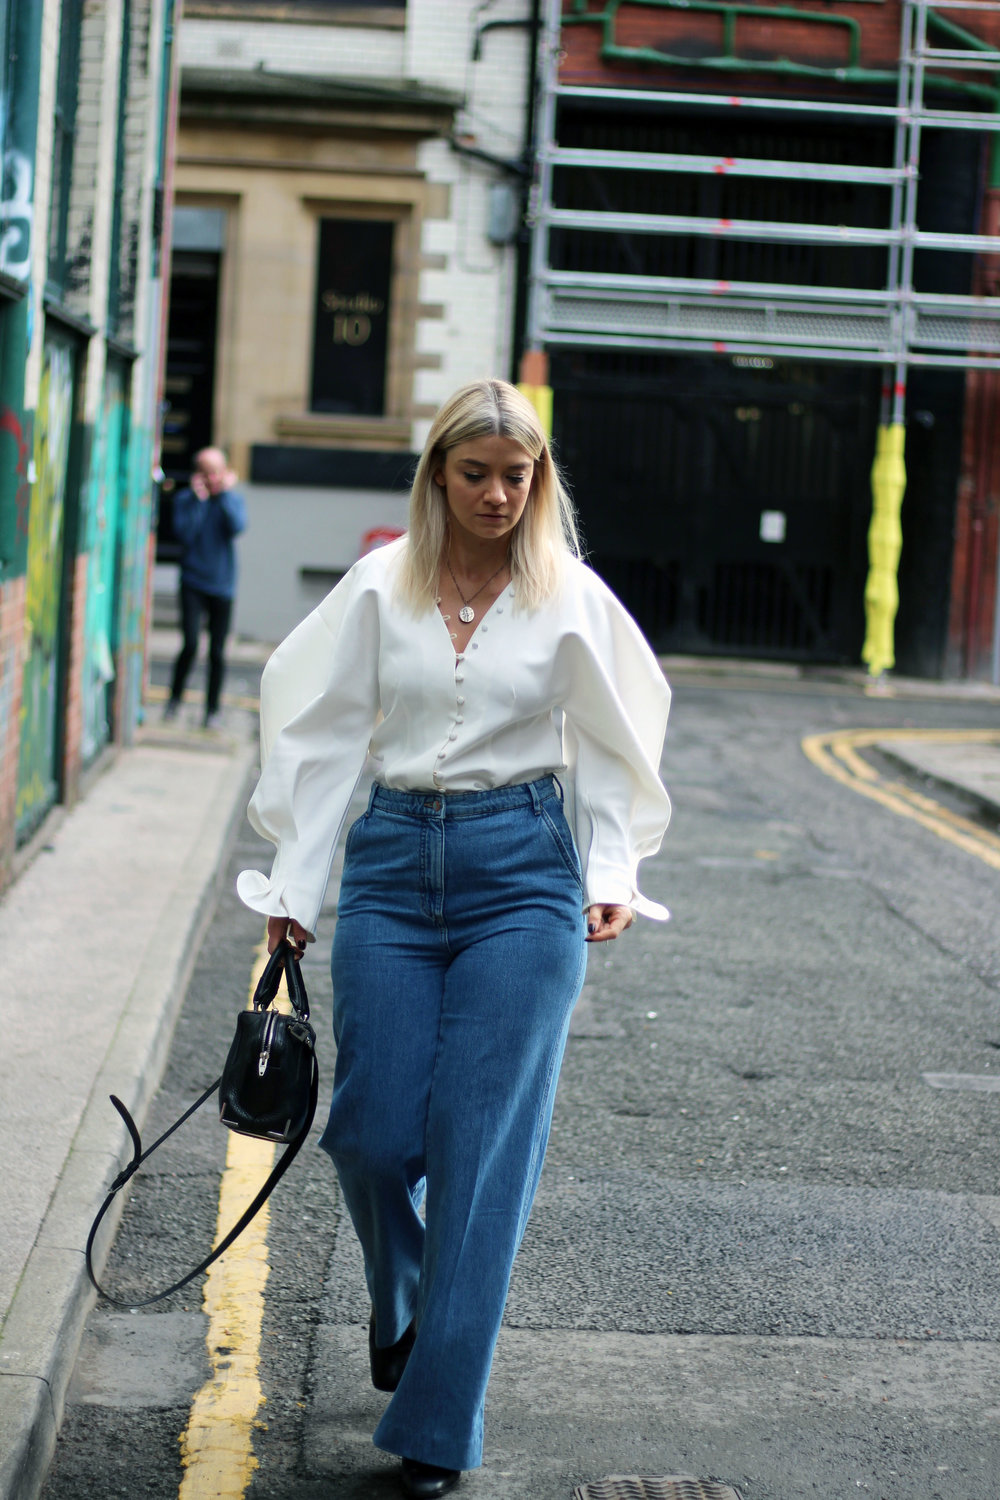 independent brands, instagram shopping, oh hey gilr, white blouse, joey taylor, northern magpie 4